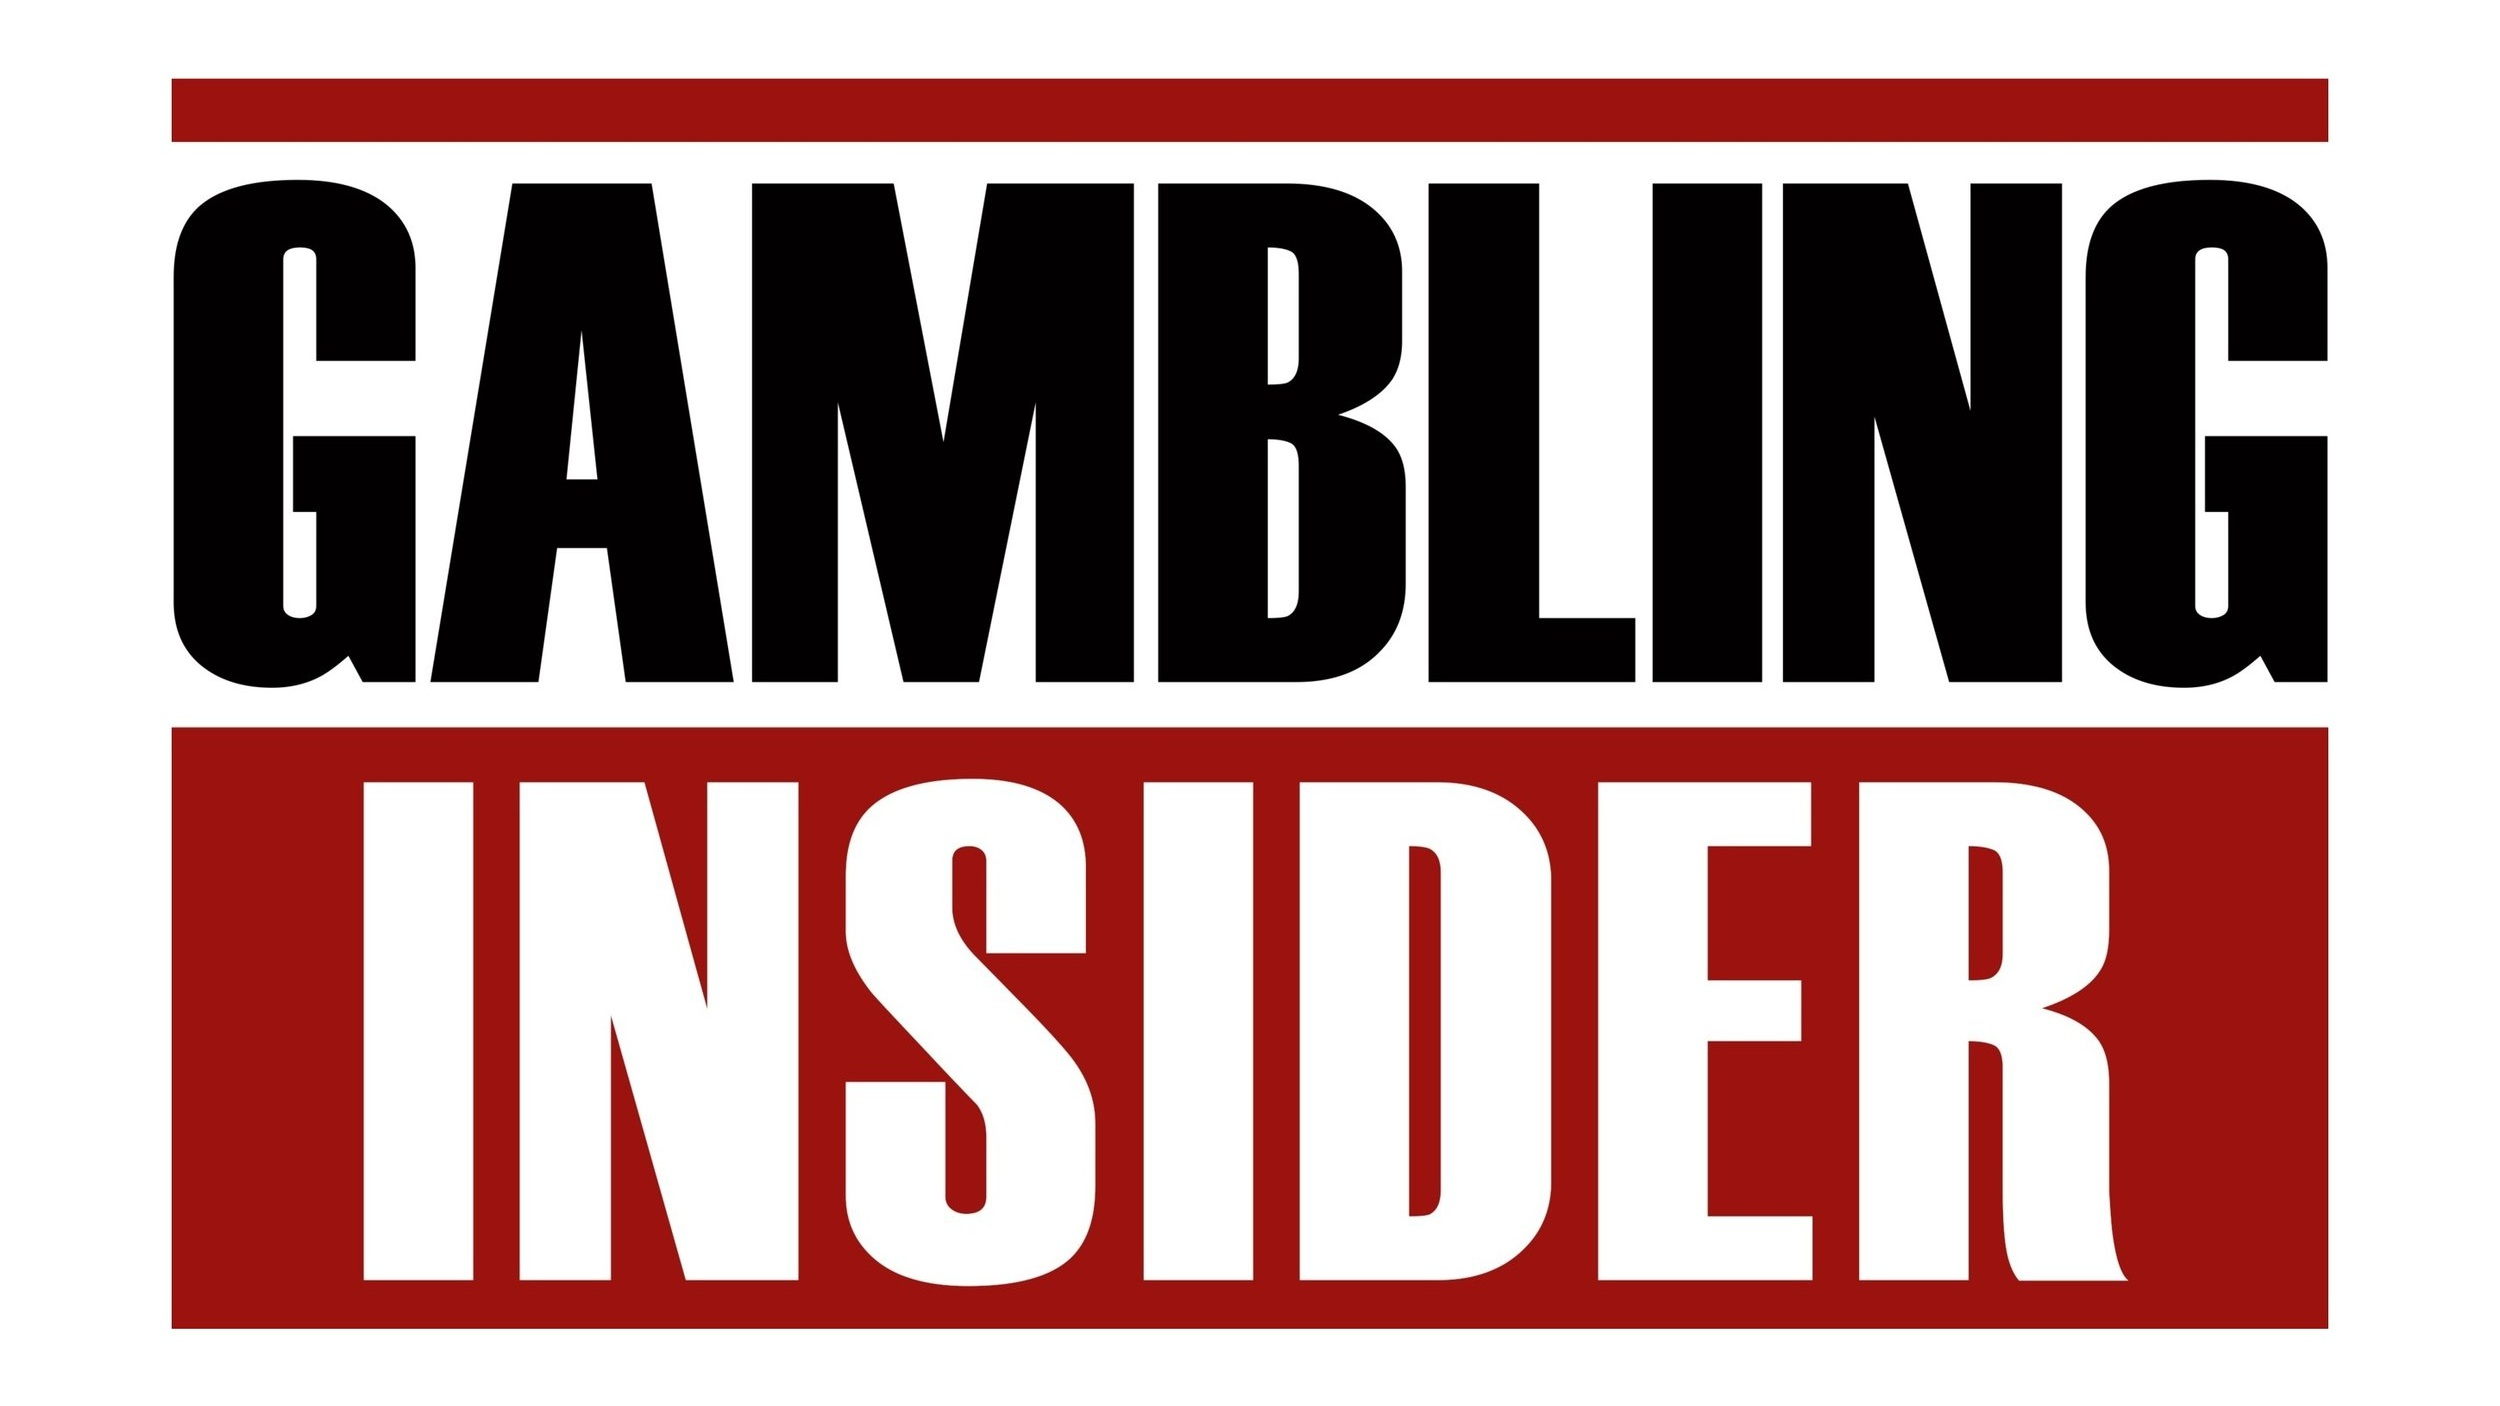 - Gambling Insider is the must-read publication for the entire global gaming industry, covering the key issues affecting the online and land-based sectors worldwide. Gambling Insider is free and goes directly to all the key decision-makers in every channel of the gaming market. Gambling Insider is available in print, online and on tablet.